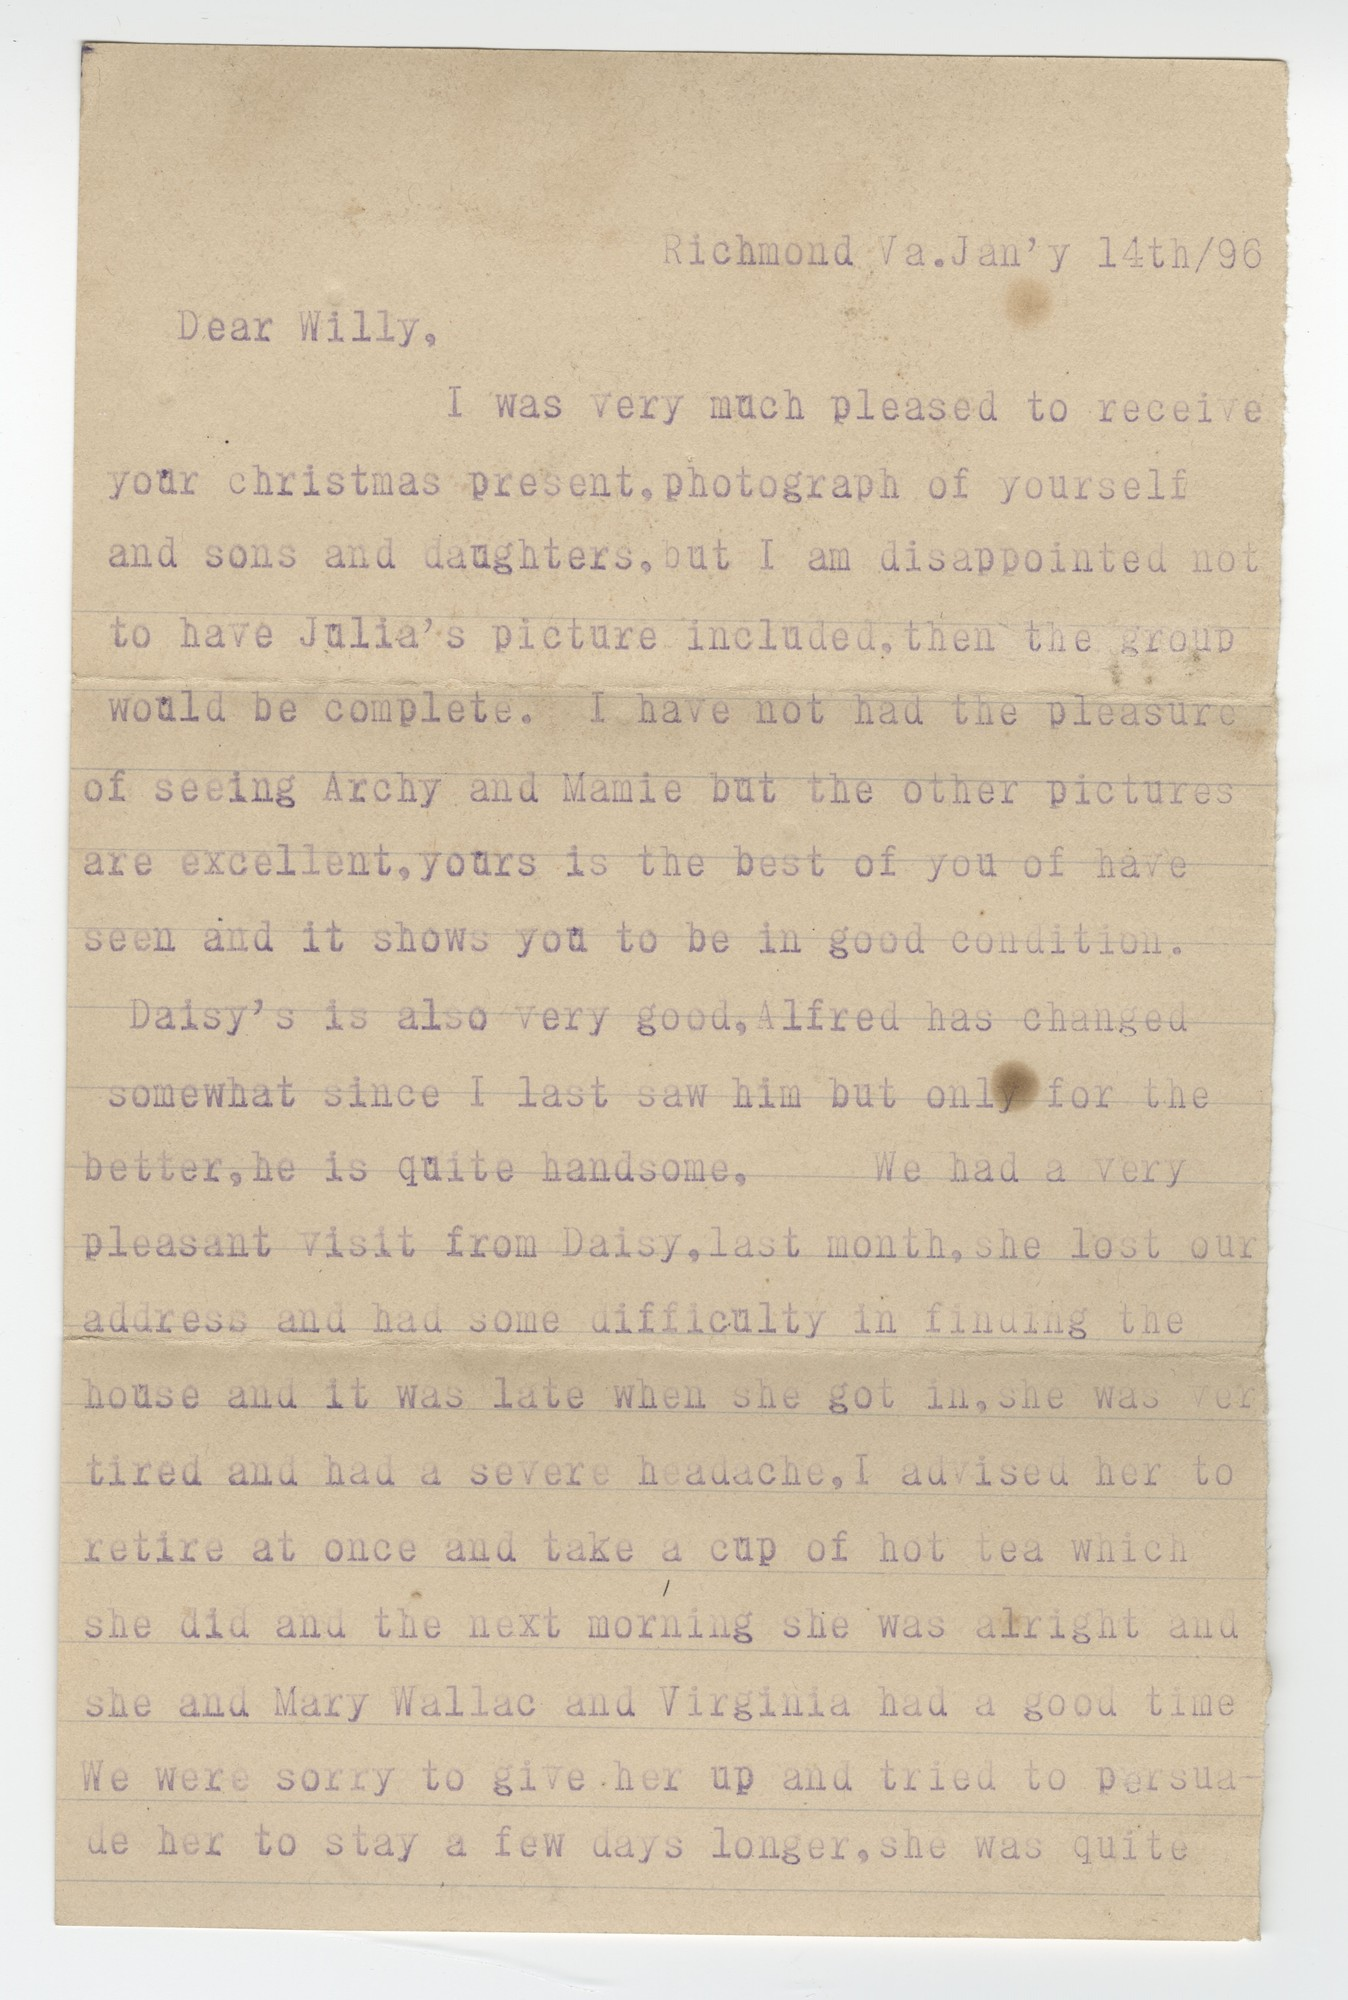 http://spec.lib.vt.edu/pickup/Omeka_upload/Ms2012-039_ConwayCatlett_F2_Letter_1896_0114a.jpg